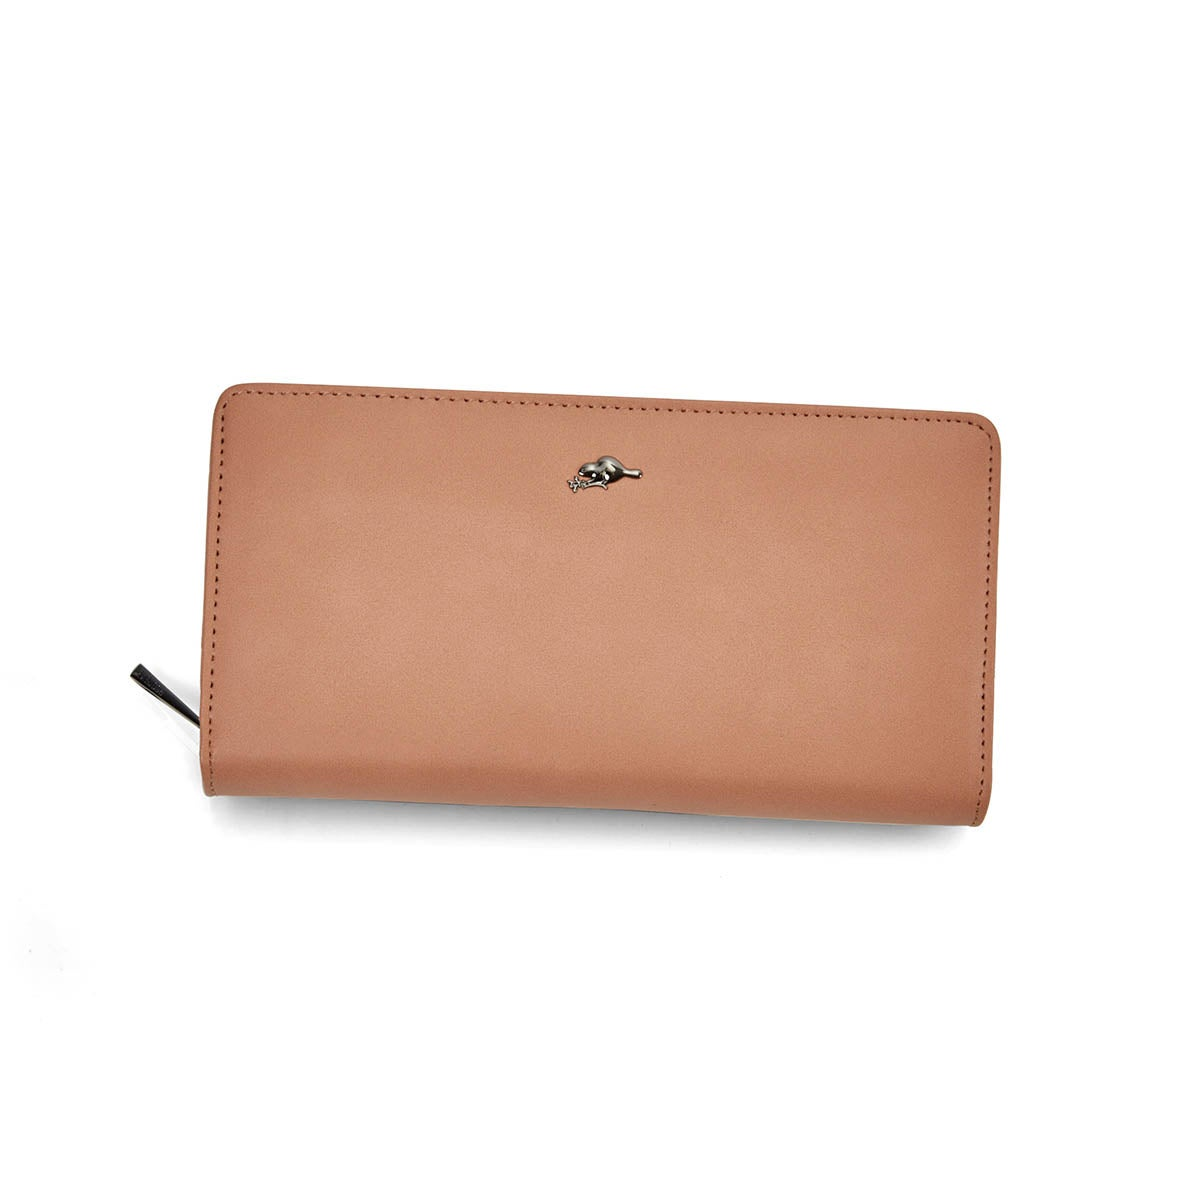 Lds Cavern Collection blsh clutch wallet